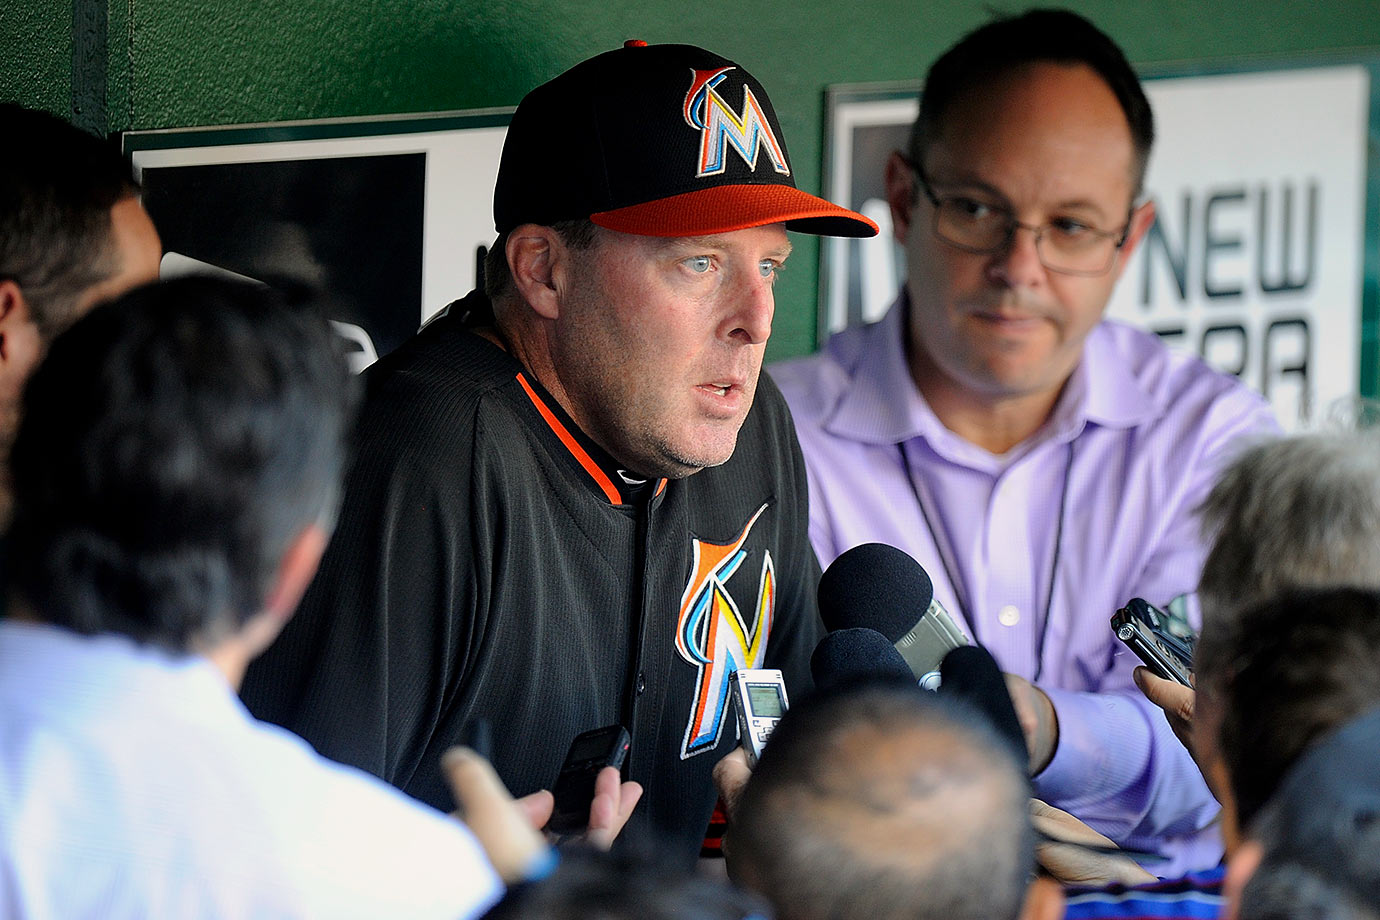 The Miami Marlins entered the 2015 season with lofty expectations. What they got was a 16-22 start, which sent manager Mike Redmond packing.